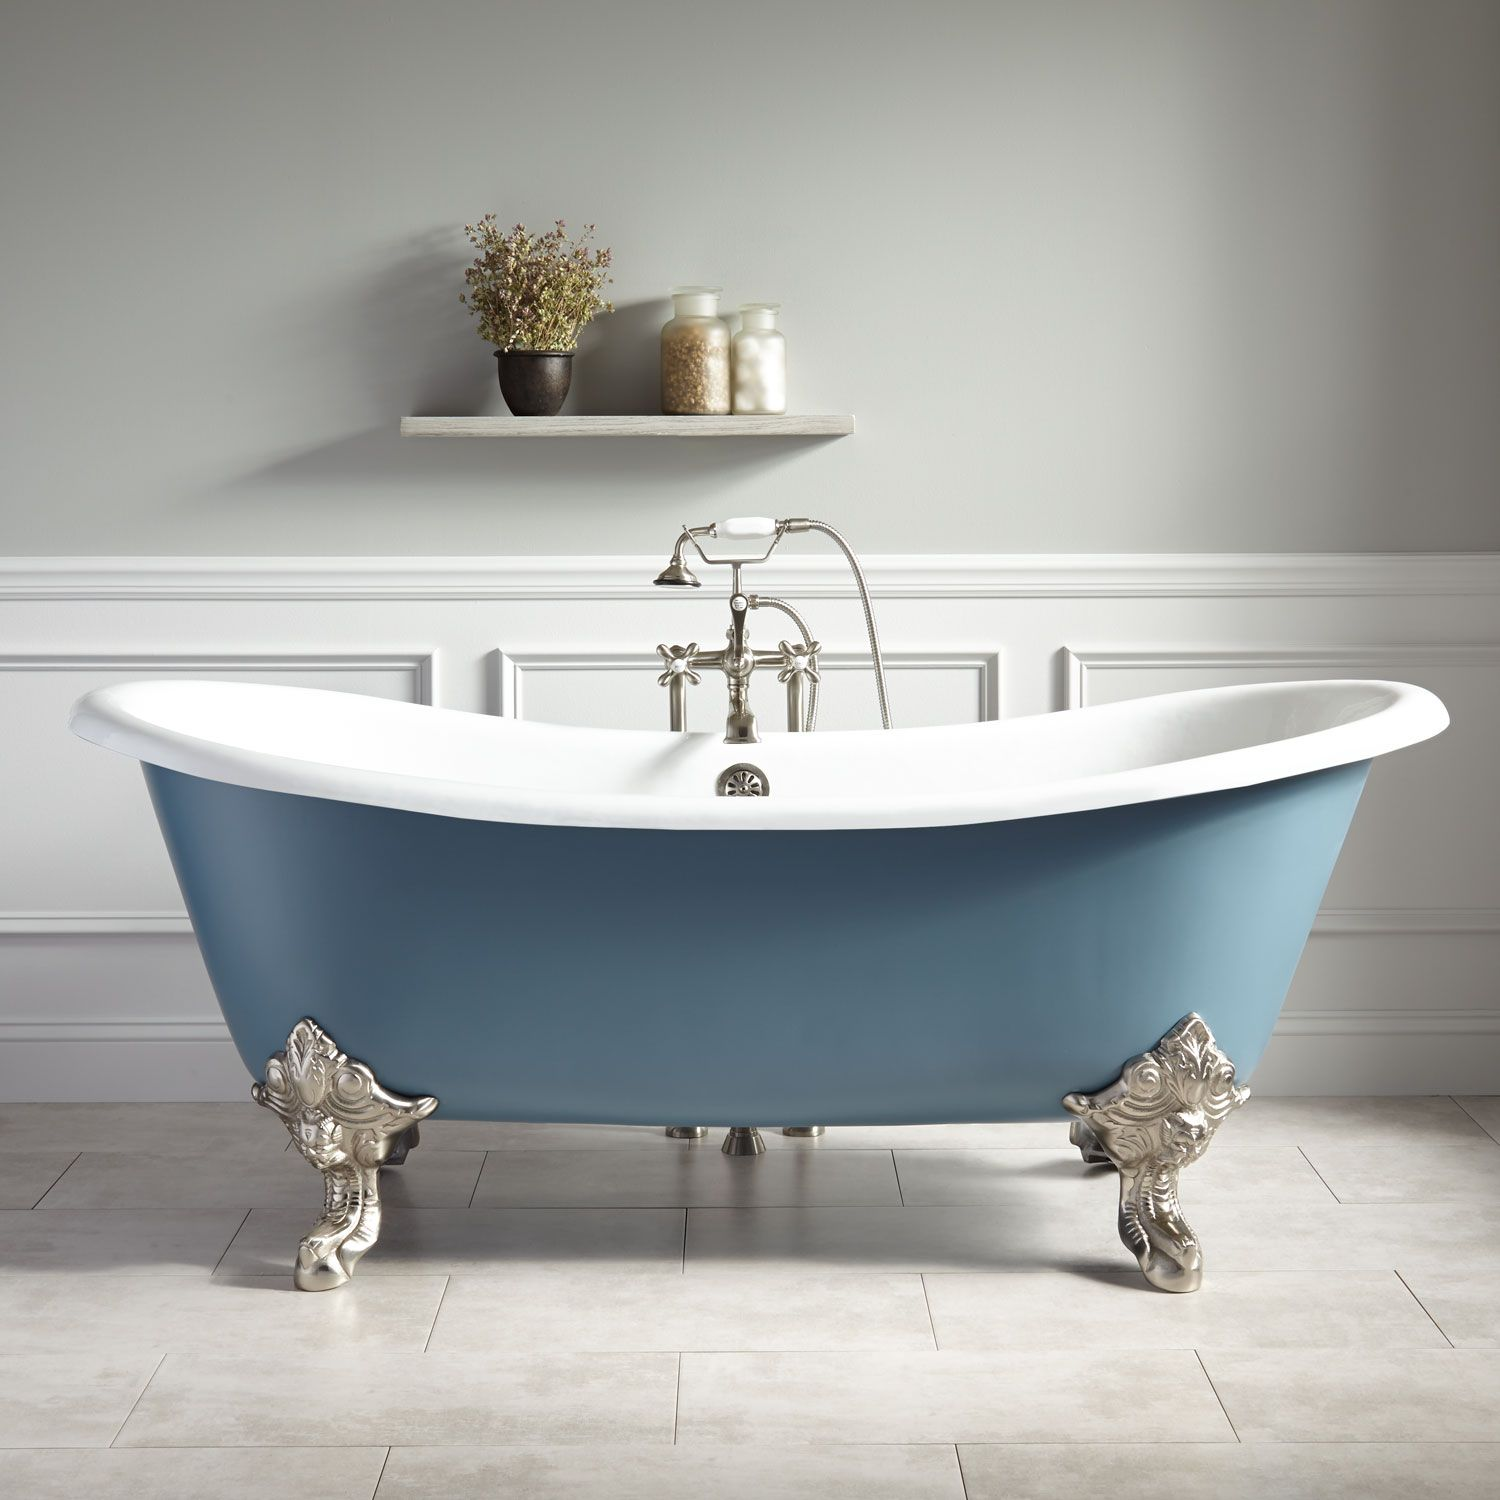 Image result for colored tub